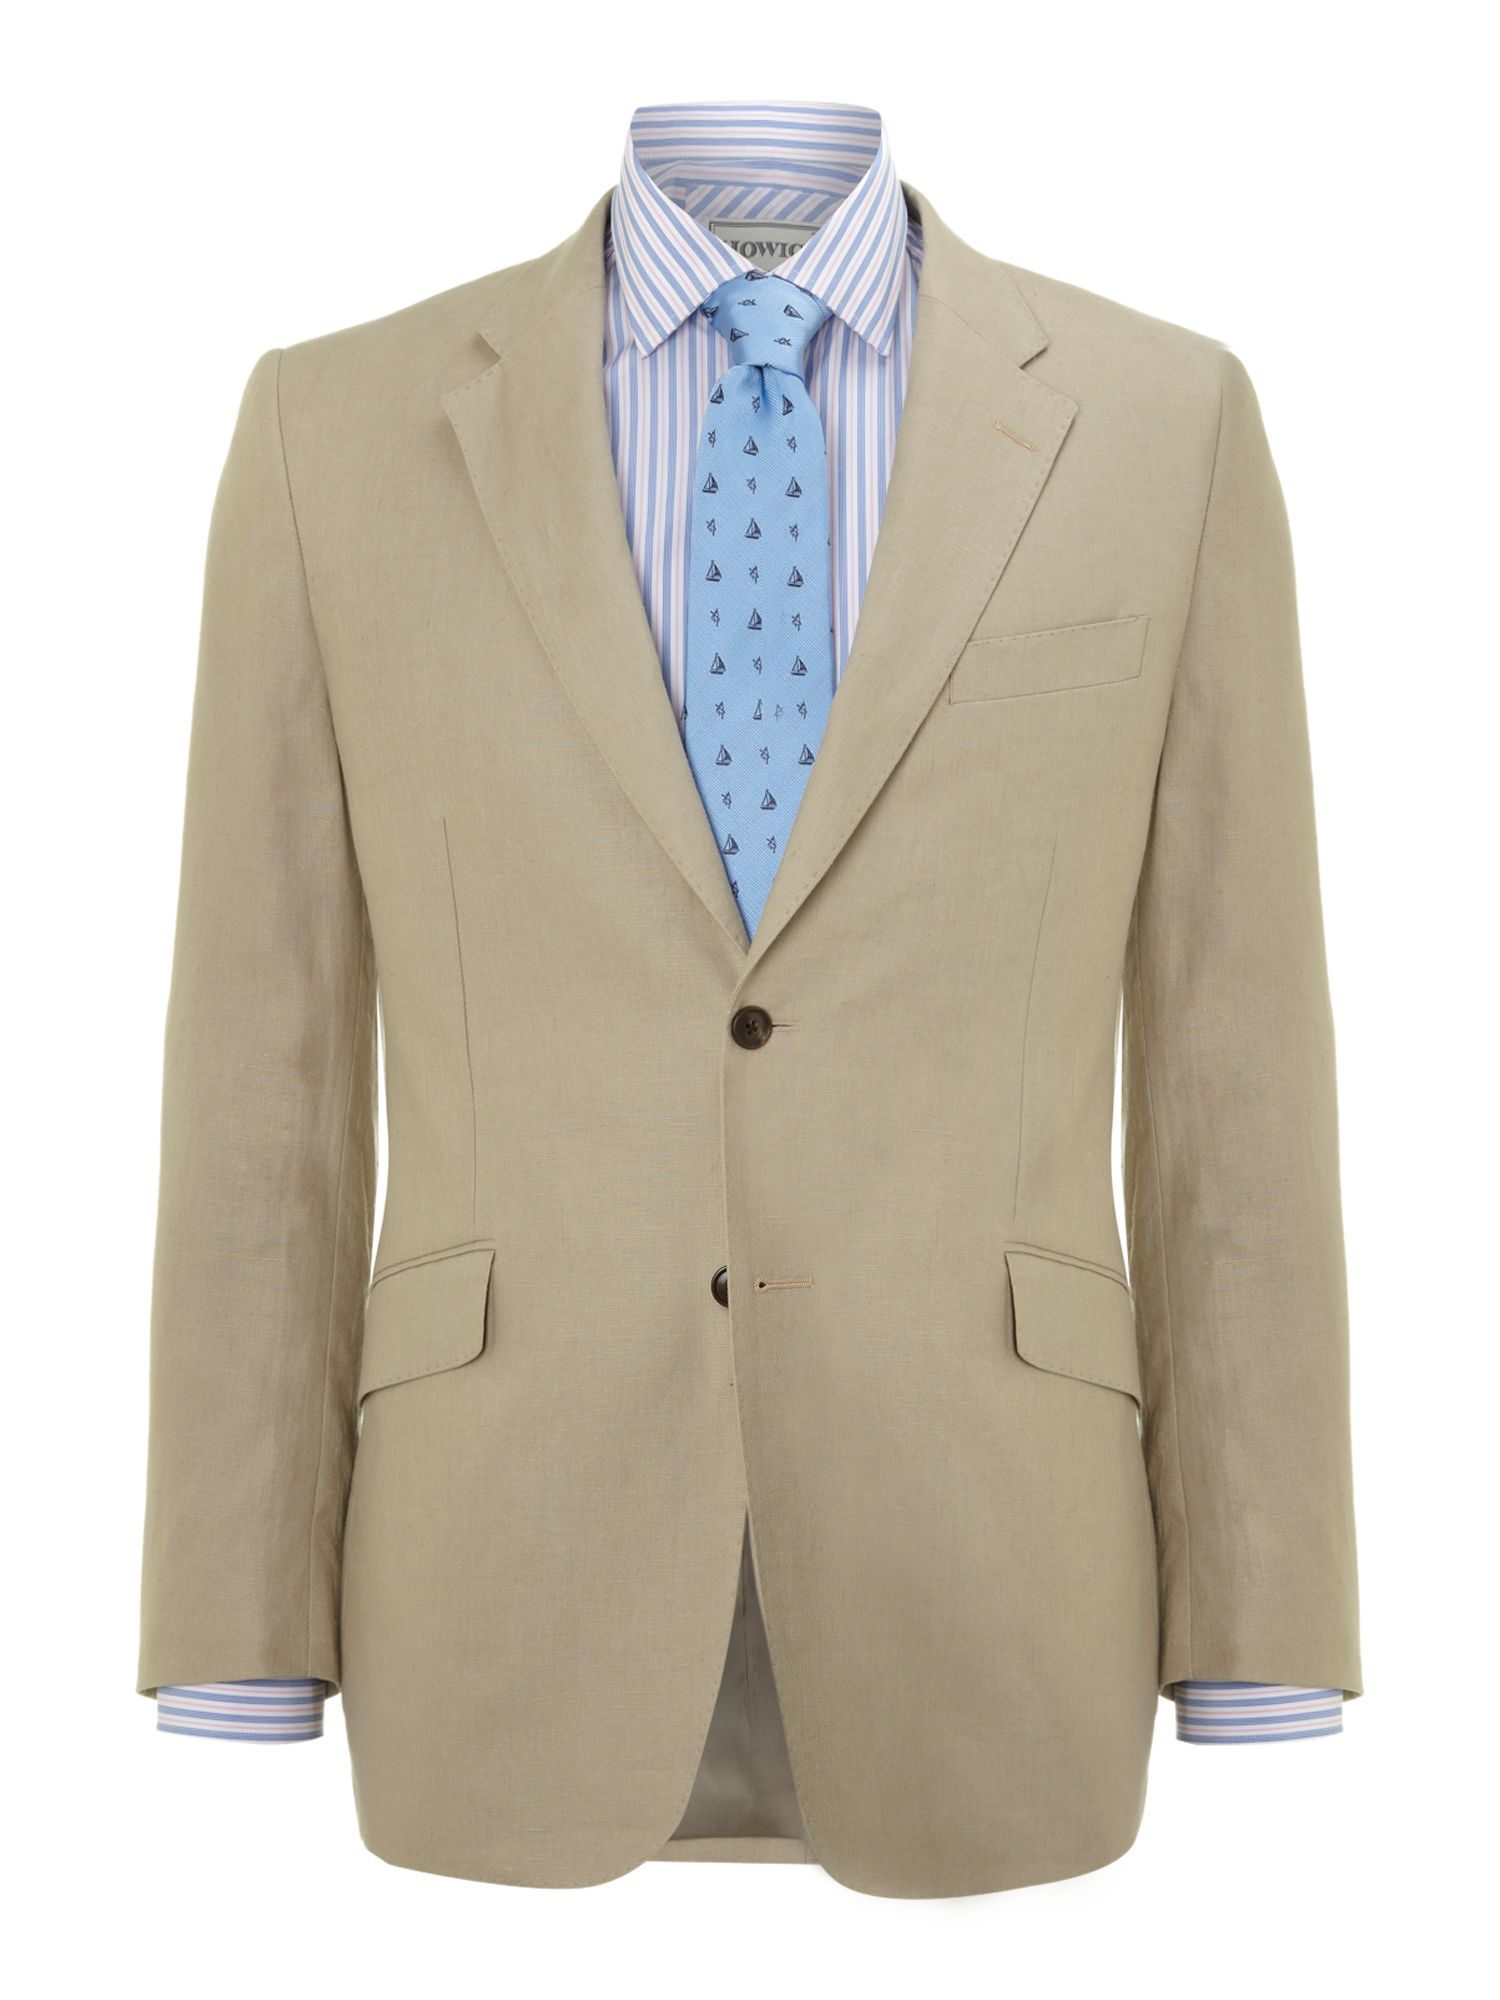 Palimor linen suit jacket